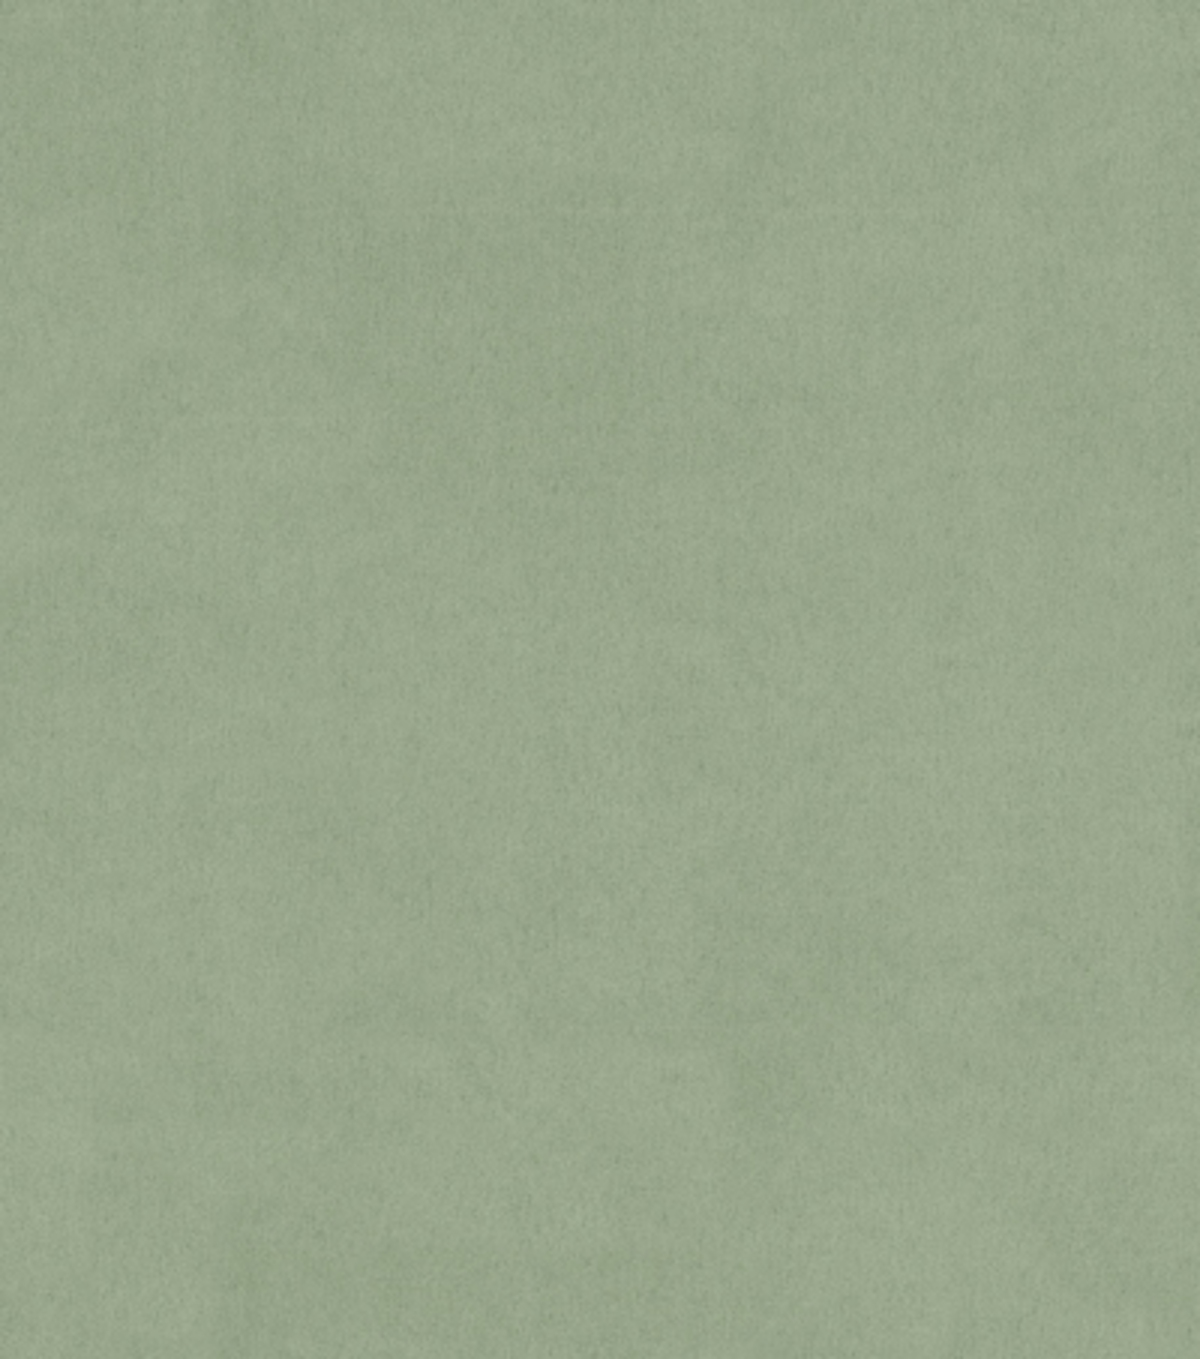 Richloom Signature Series Solid Fabric 58\u0022-Chateau Mist